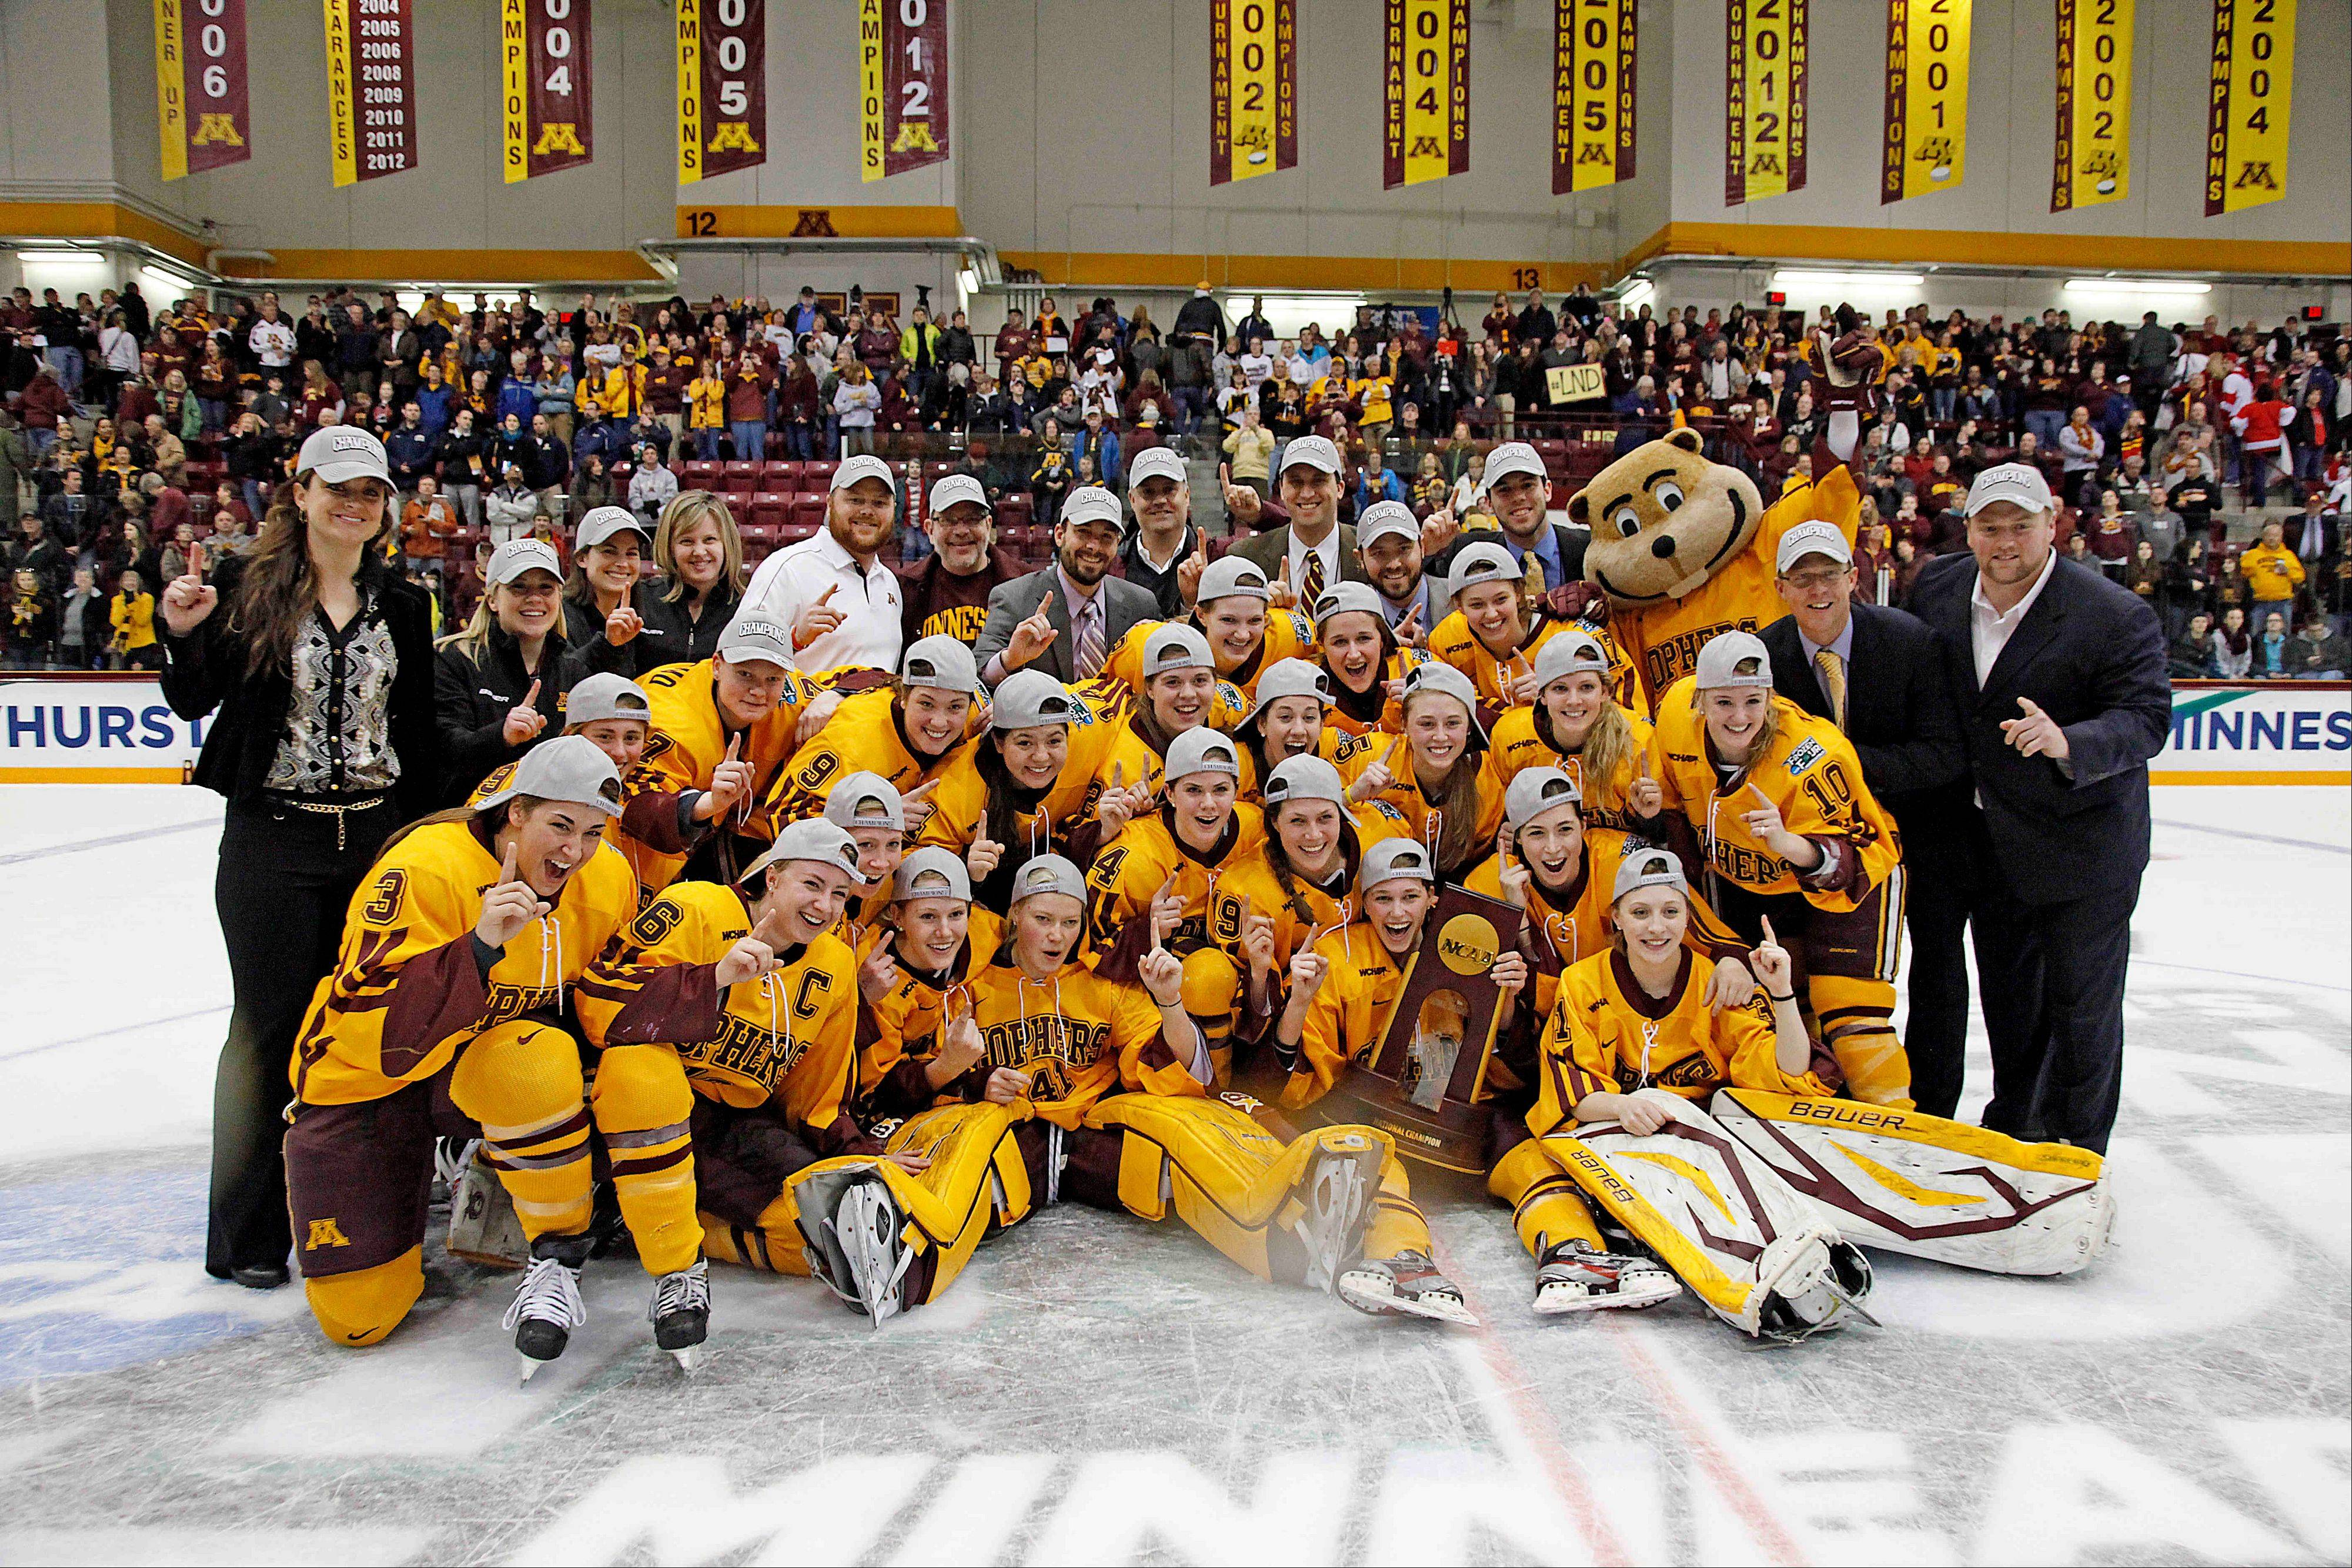 The Minnesota women's hockey team poses with their trophy after their 6-3 win against Boston University in the Frozen Four NCAA Championship college hockey game Sunday in Minneapolis.